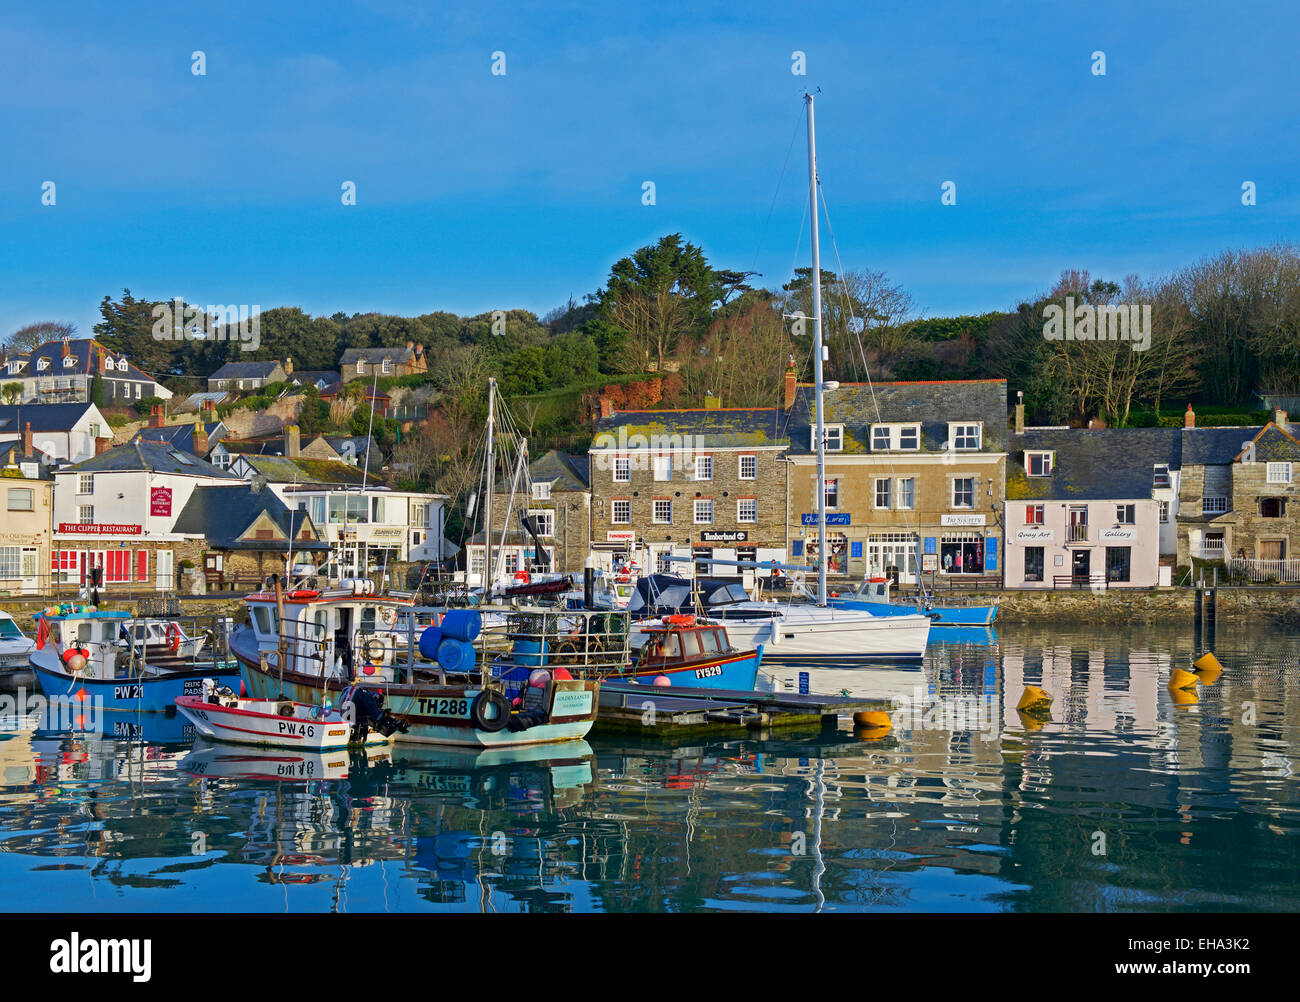 boats-in-the-harbour-padstow-cornwall-england-uk-EHA3K2.jpg